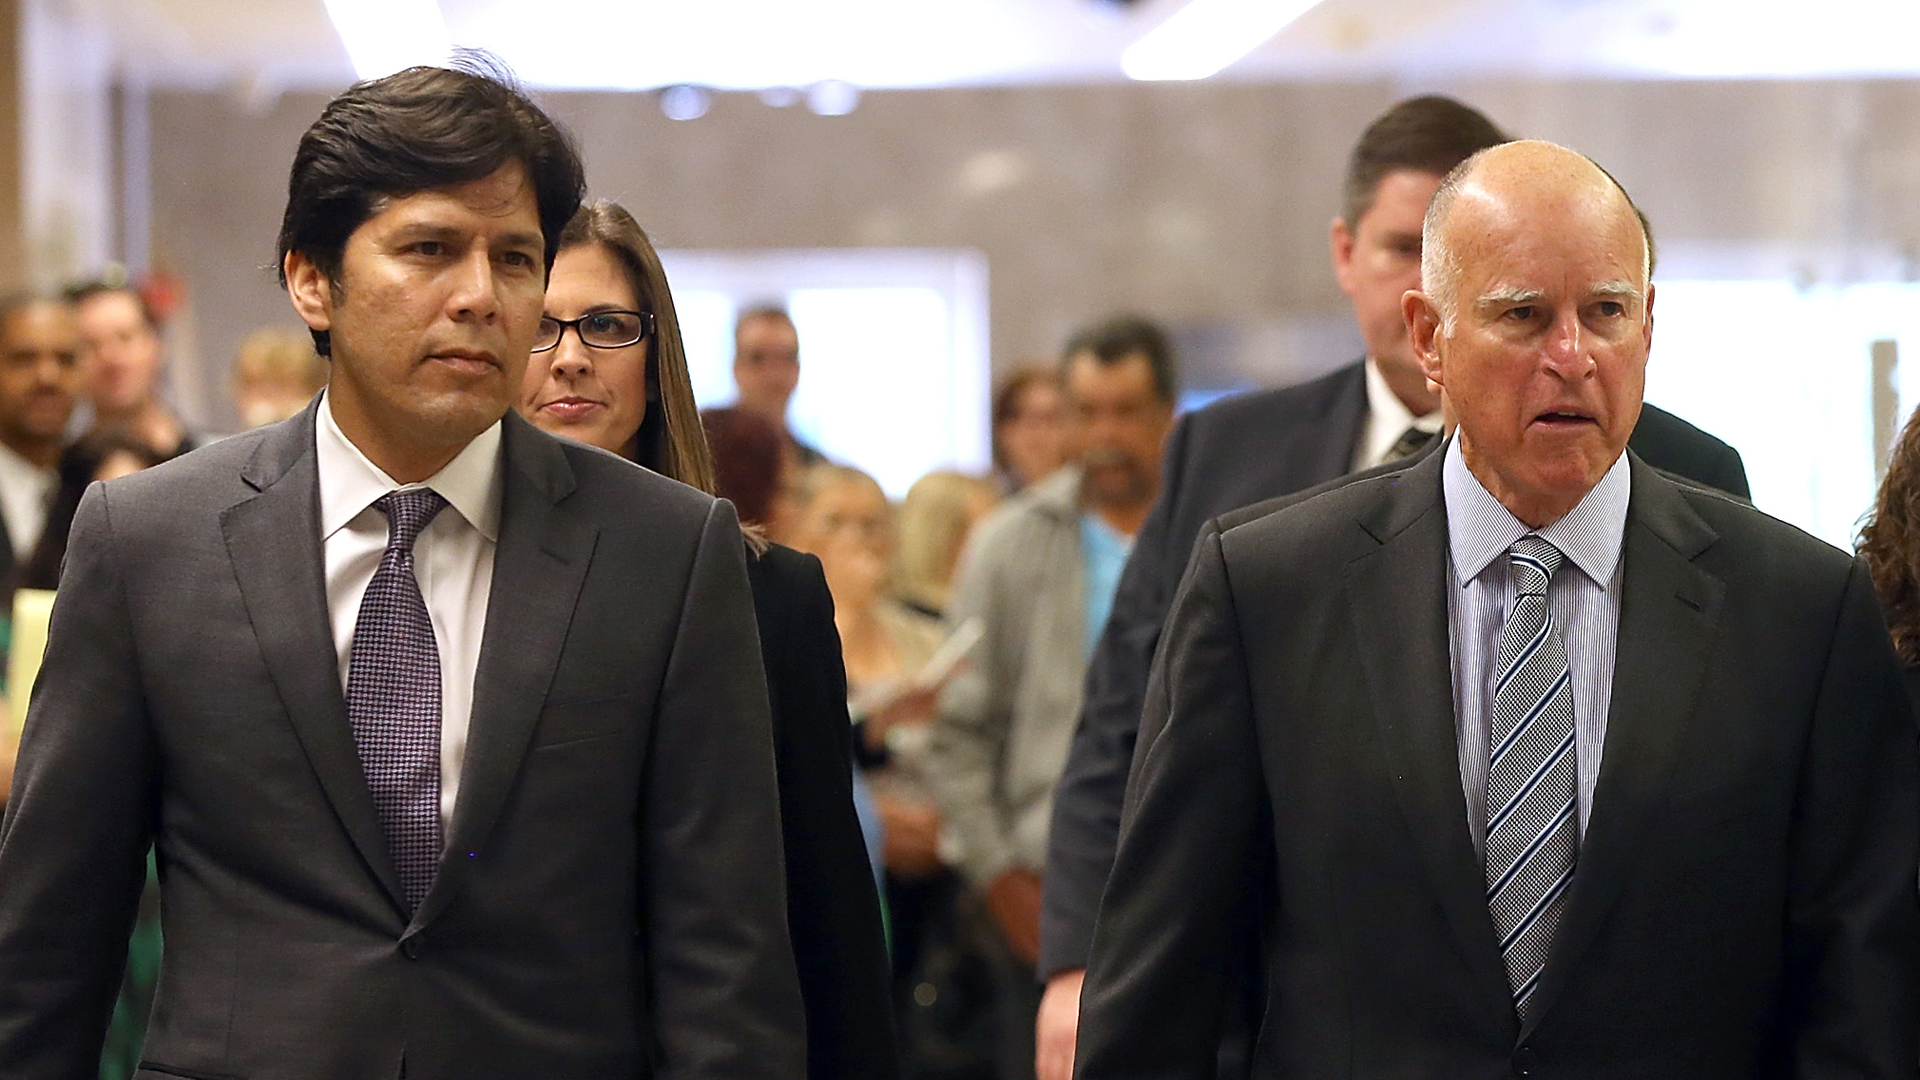 California Gov. Jerry Brown walks with Senate President pro Tempore Kevin de Leon to a news conference to announce emergency drought legislation on March 19, 2015, in Sacramento. (Credit: Justin Sullivan/Getty Images)